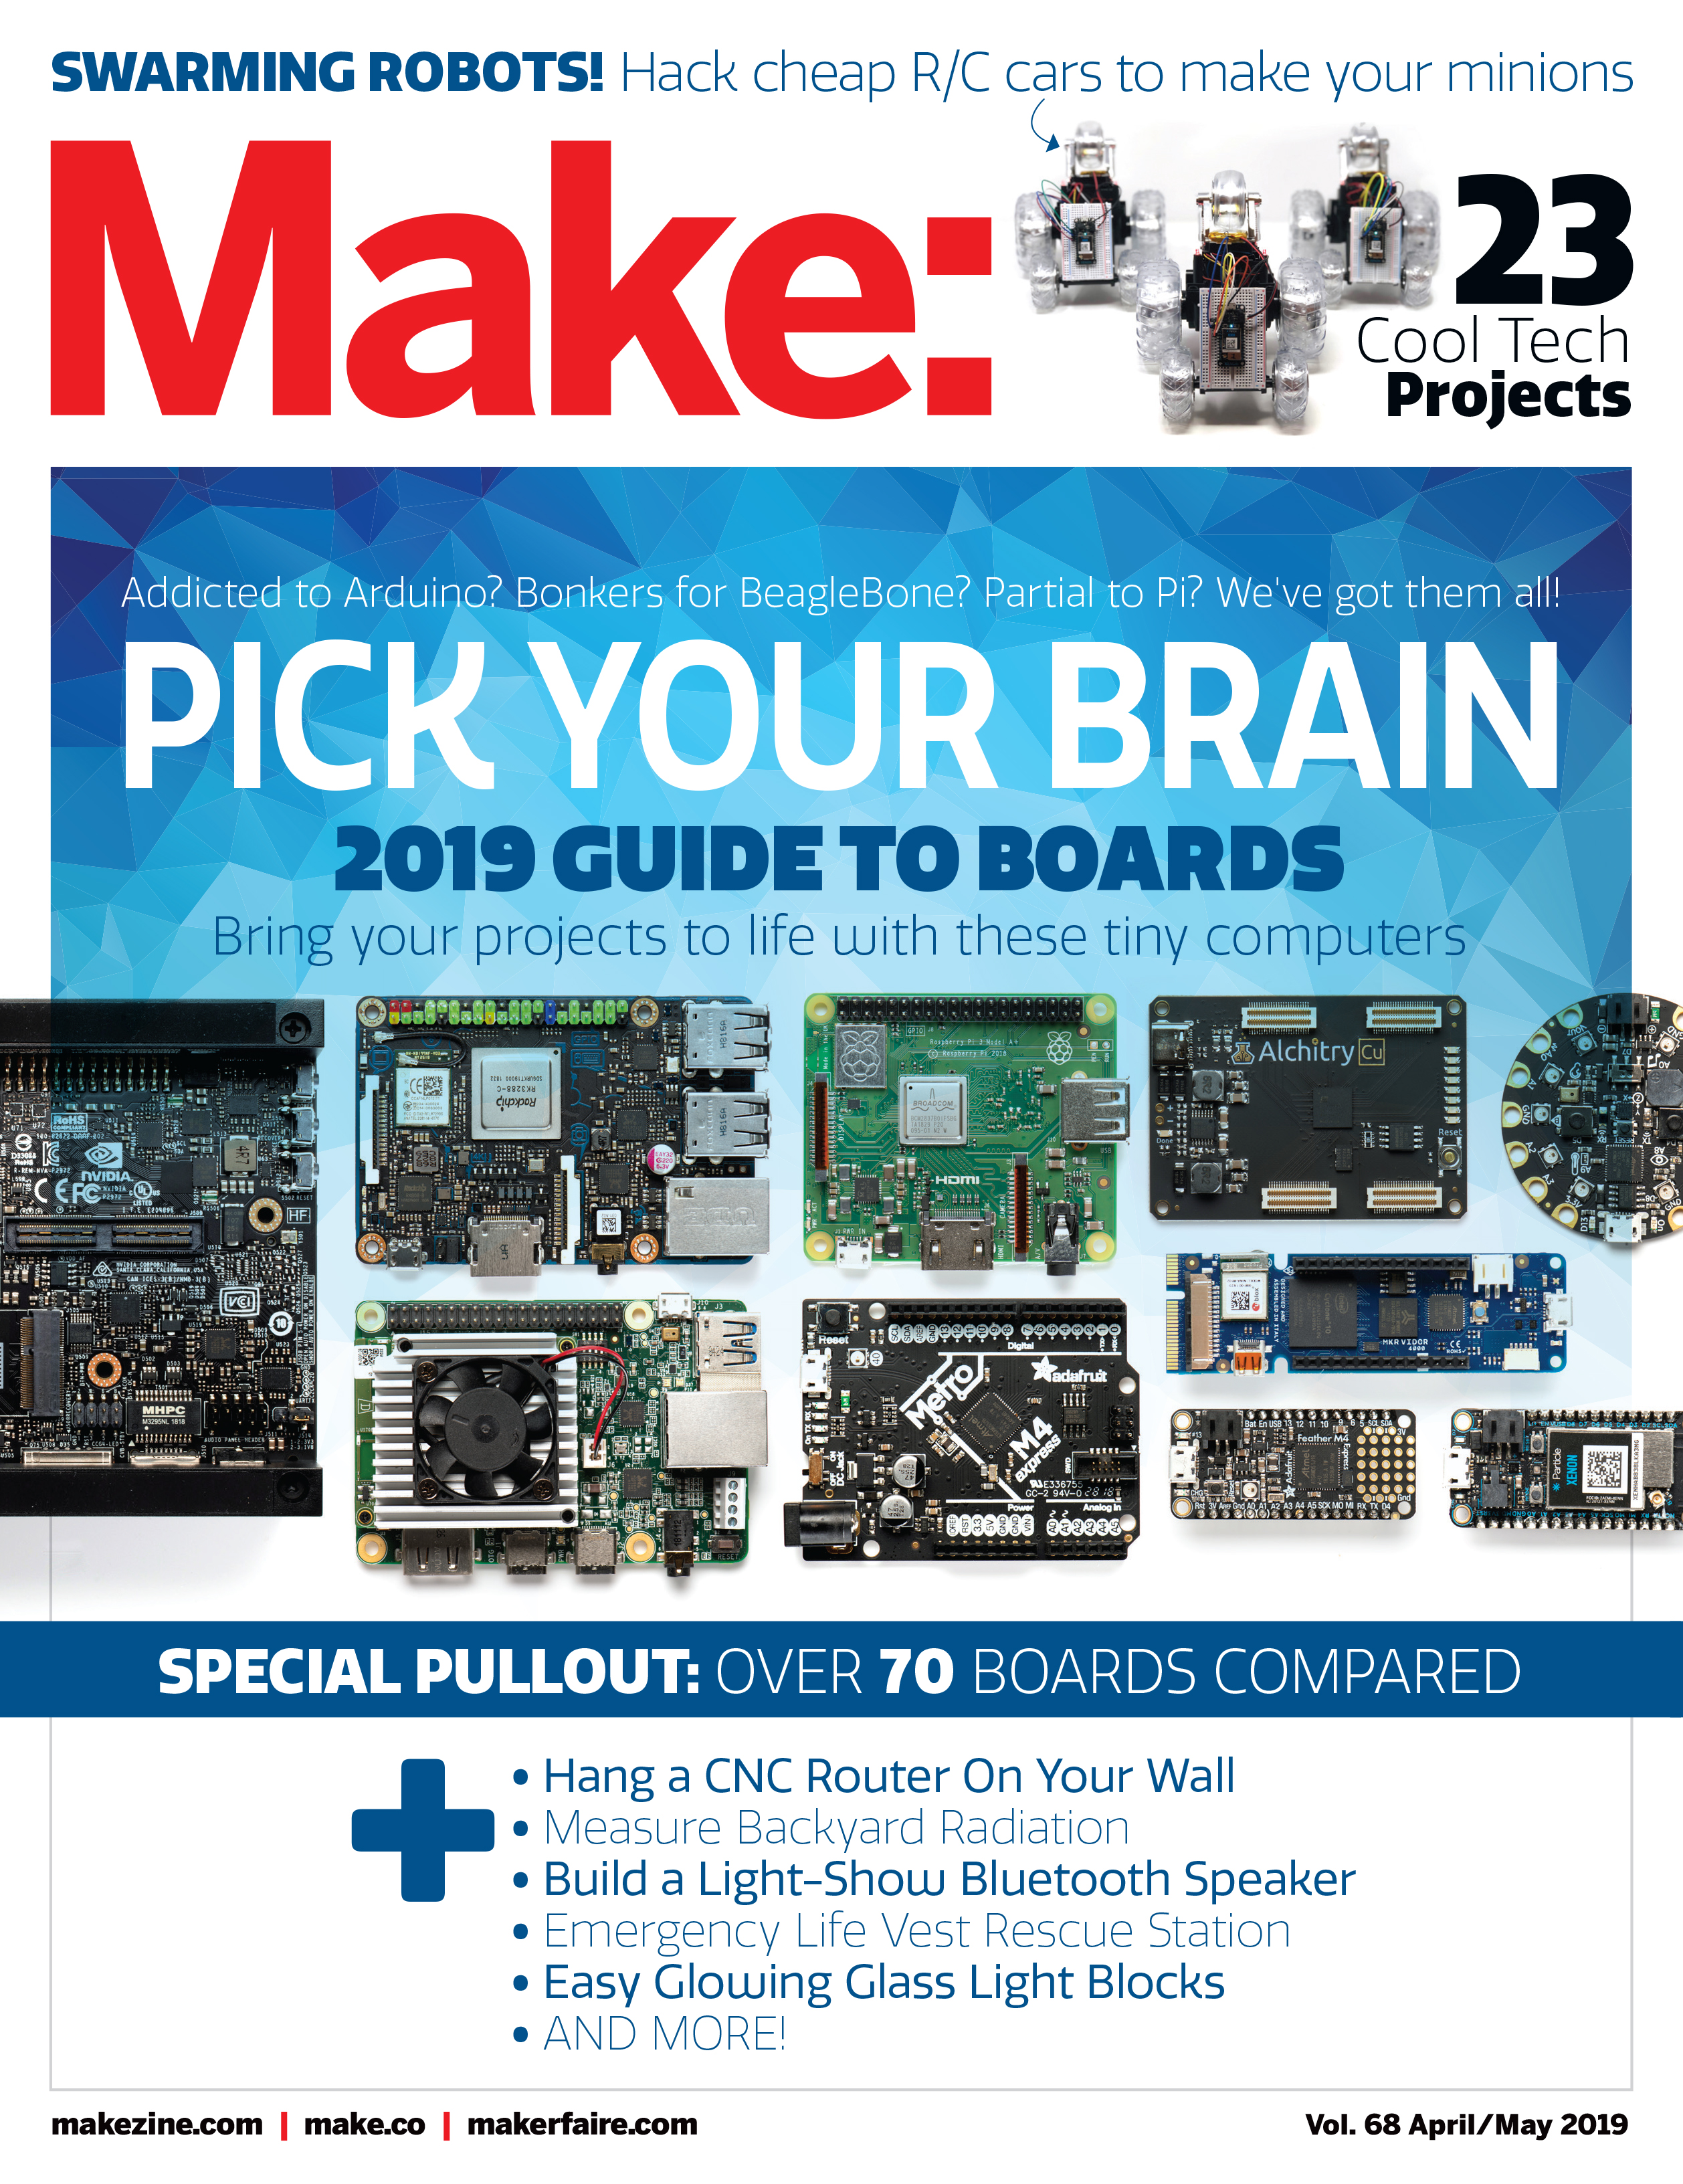 Make: (Technology on Your Time) - Digital Magazine